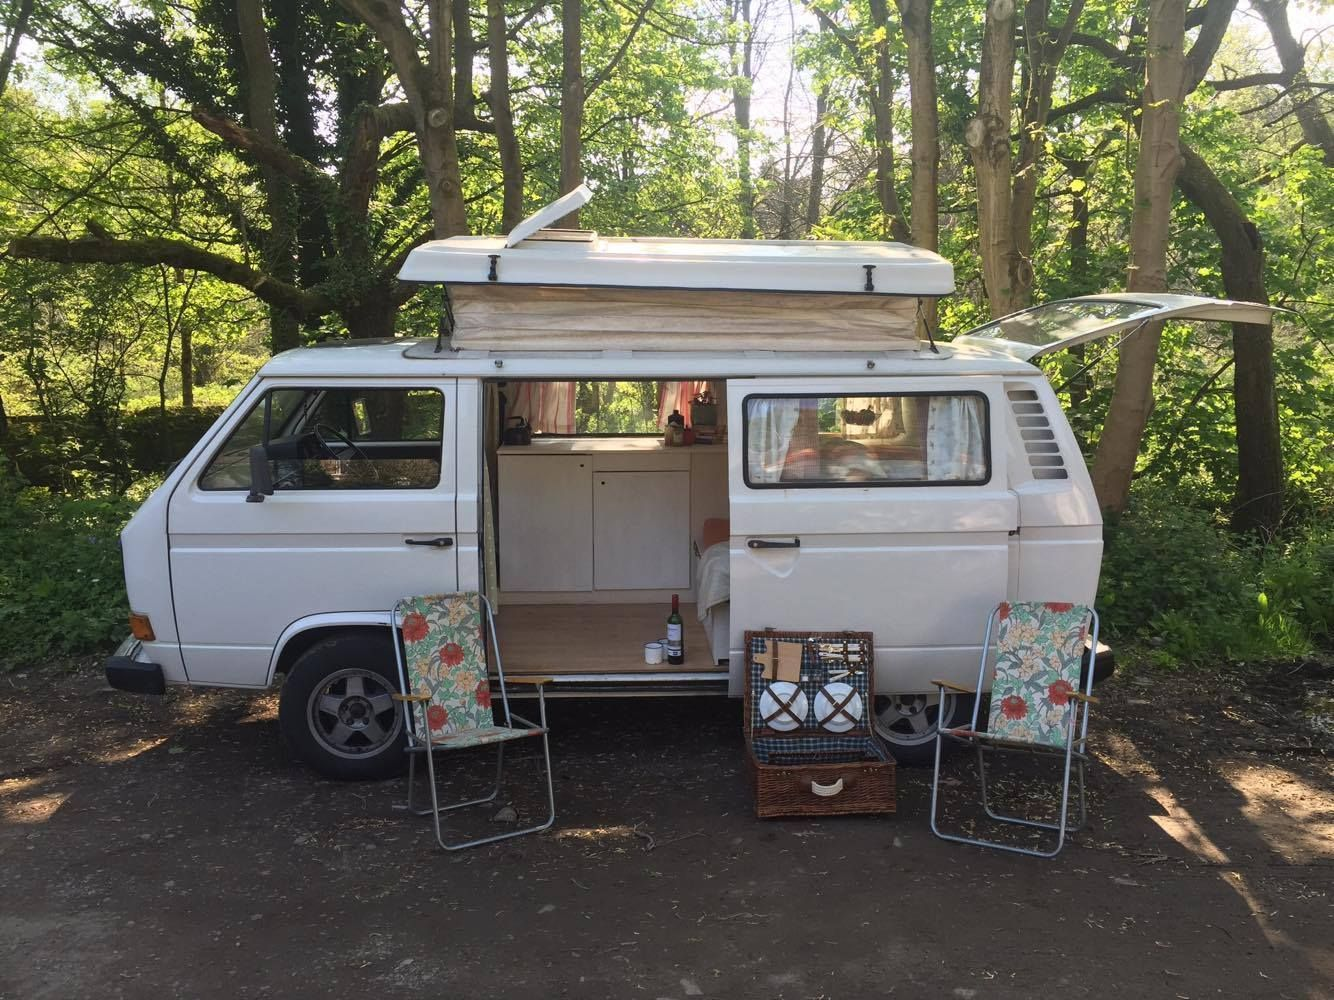 Camper Cars Vw T25 Camper Van T3 Not T1 T2 Ebay Ideas For My 84